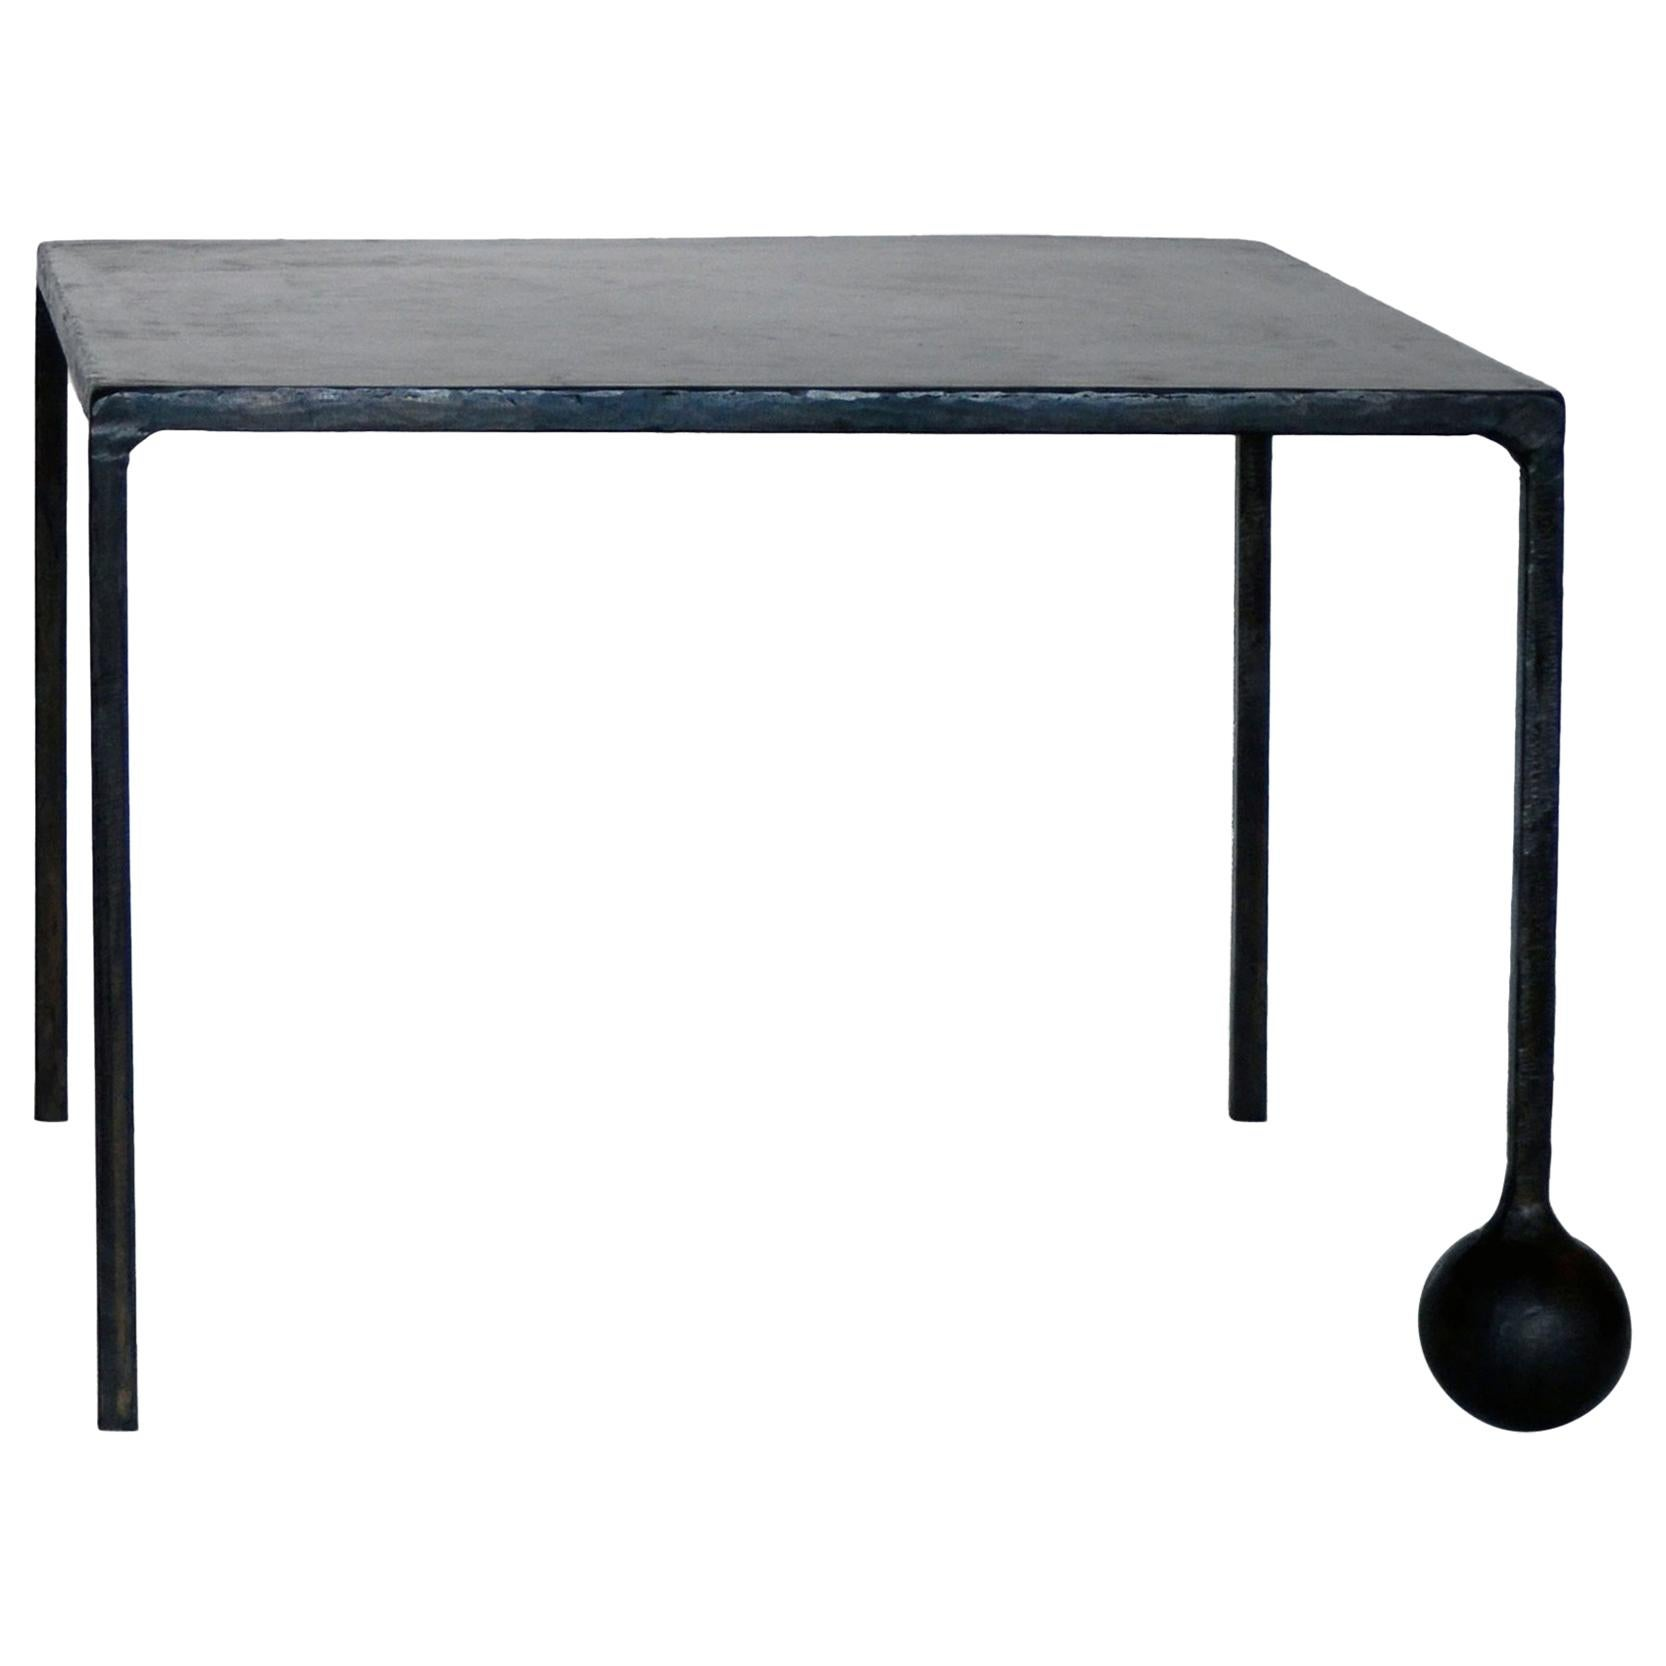 End/Side Table Modern Geometric Handmade Carved Blackened Waxed Steel Minimalist